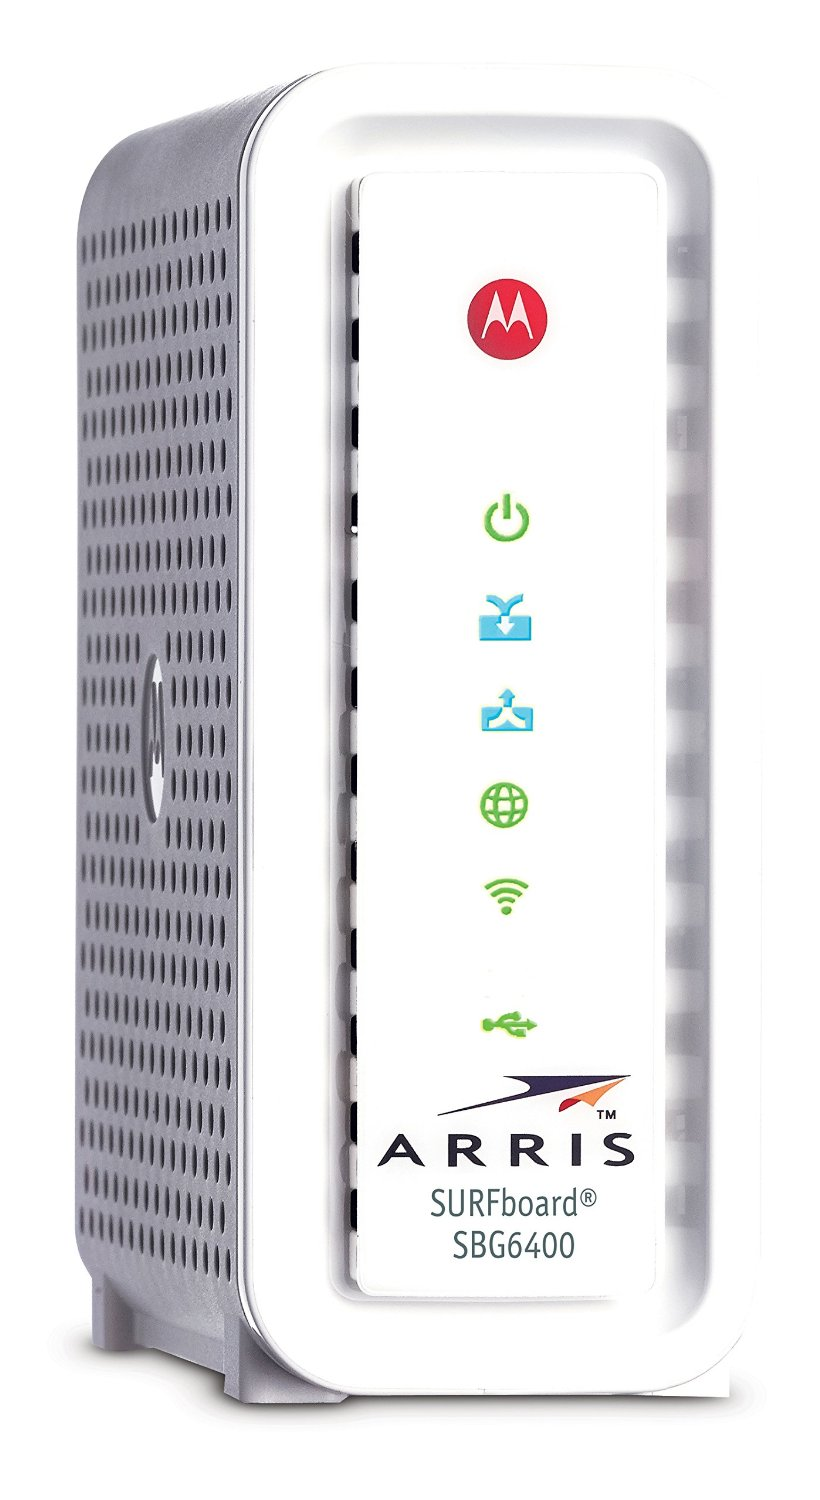 ARRIS Motorola Cable Modem with Wi-Fi N Router (SBG6400)